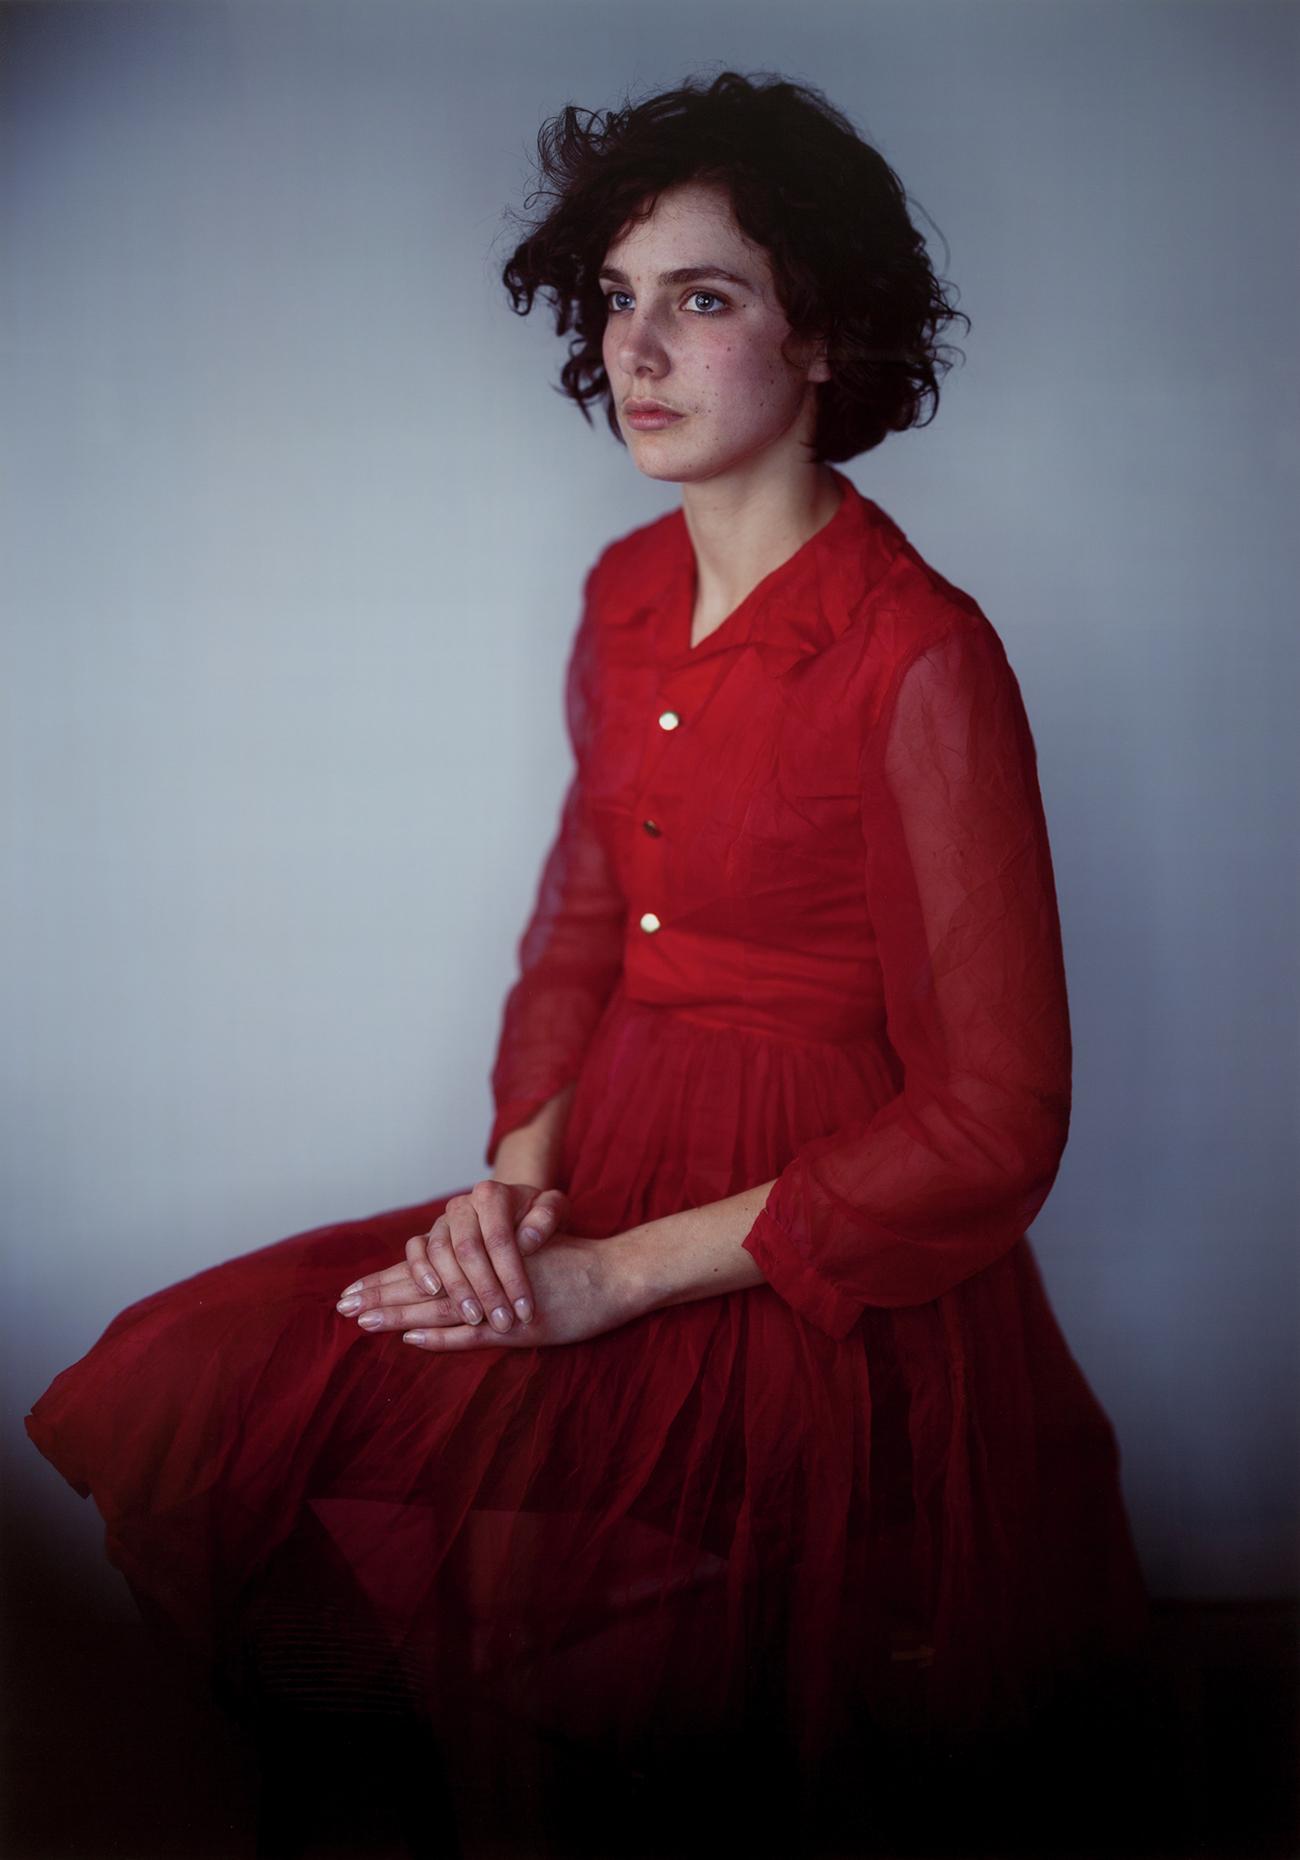 Agnes in Red Dress, 2008, Richard Learoyd, silver-dye bleach print. © Richard Learoyd, courtesy Fraenkel Gallery, San Francisco.